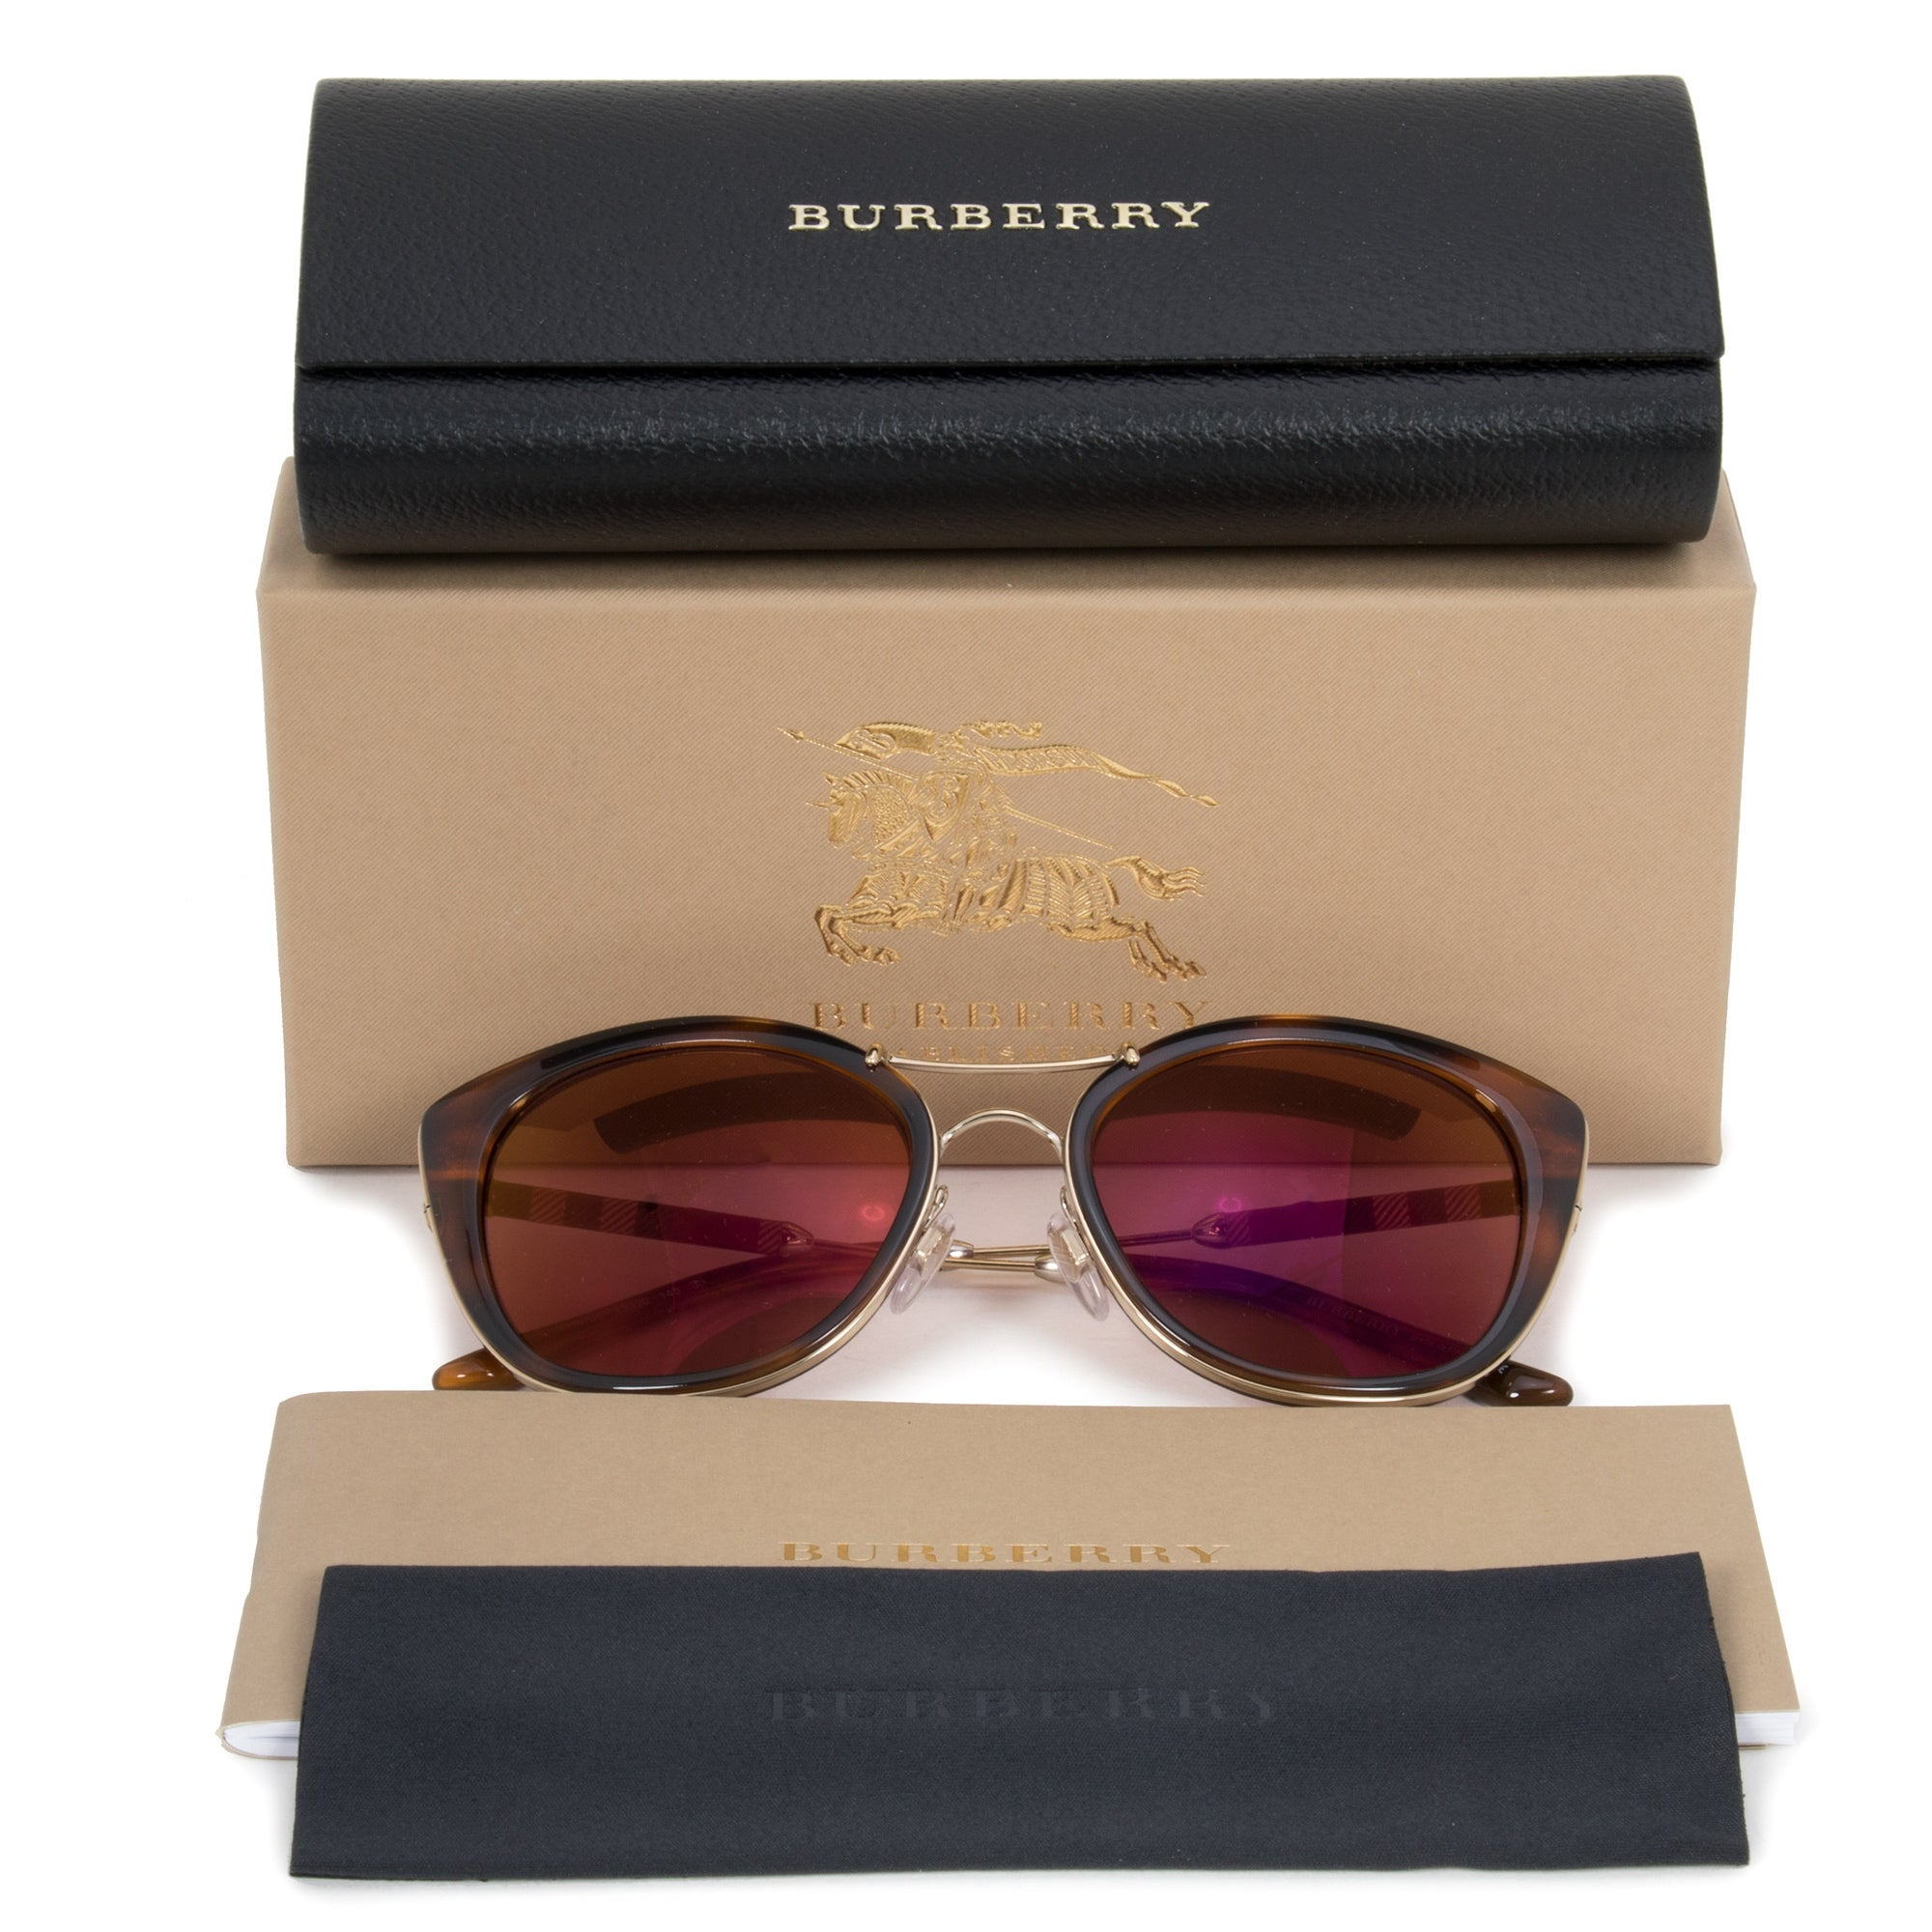 2741861c534b Shop Burberry Aviator Sunglasses BE4251Q 3316D0 53 - On Sale - Free  Shipping Today - Overstock - 25494031